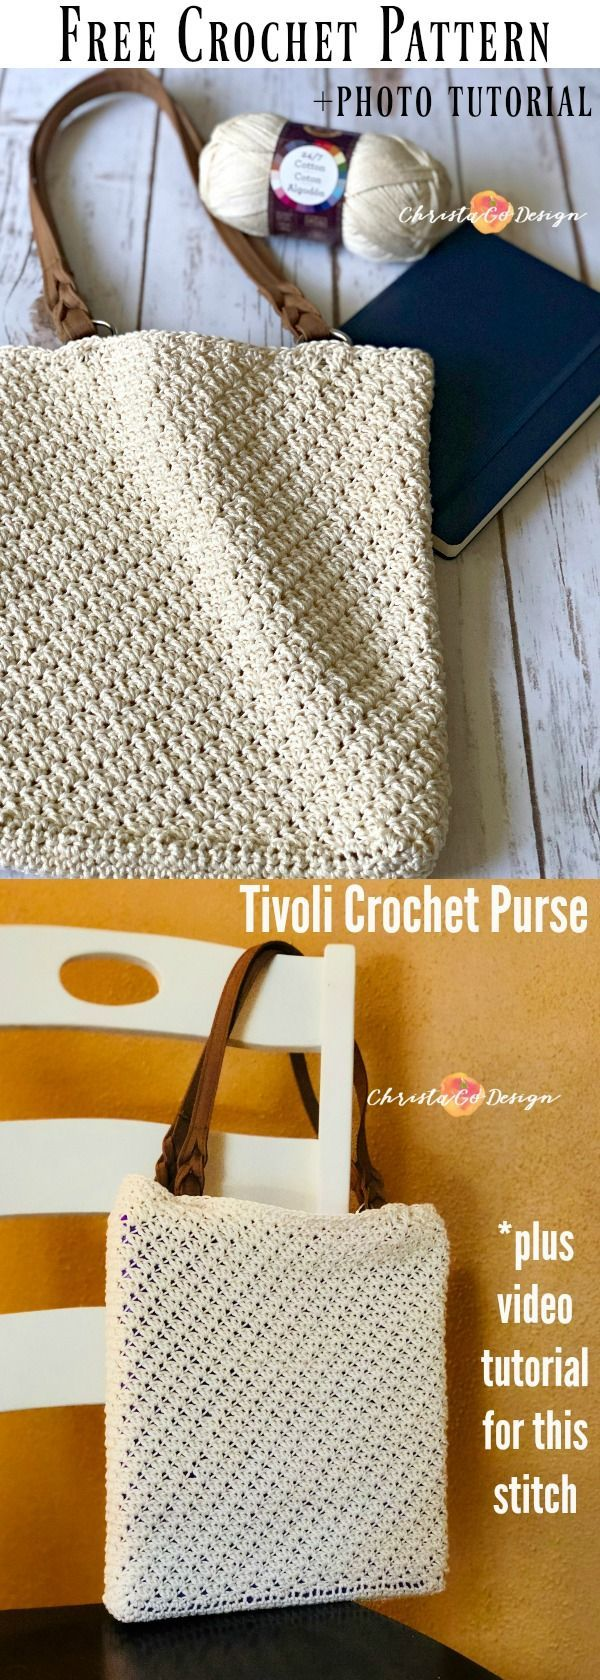 Tivoli Crochet Purse Pattern - ChristaCoDesign Tivoli Crochet Purse ...